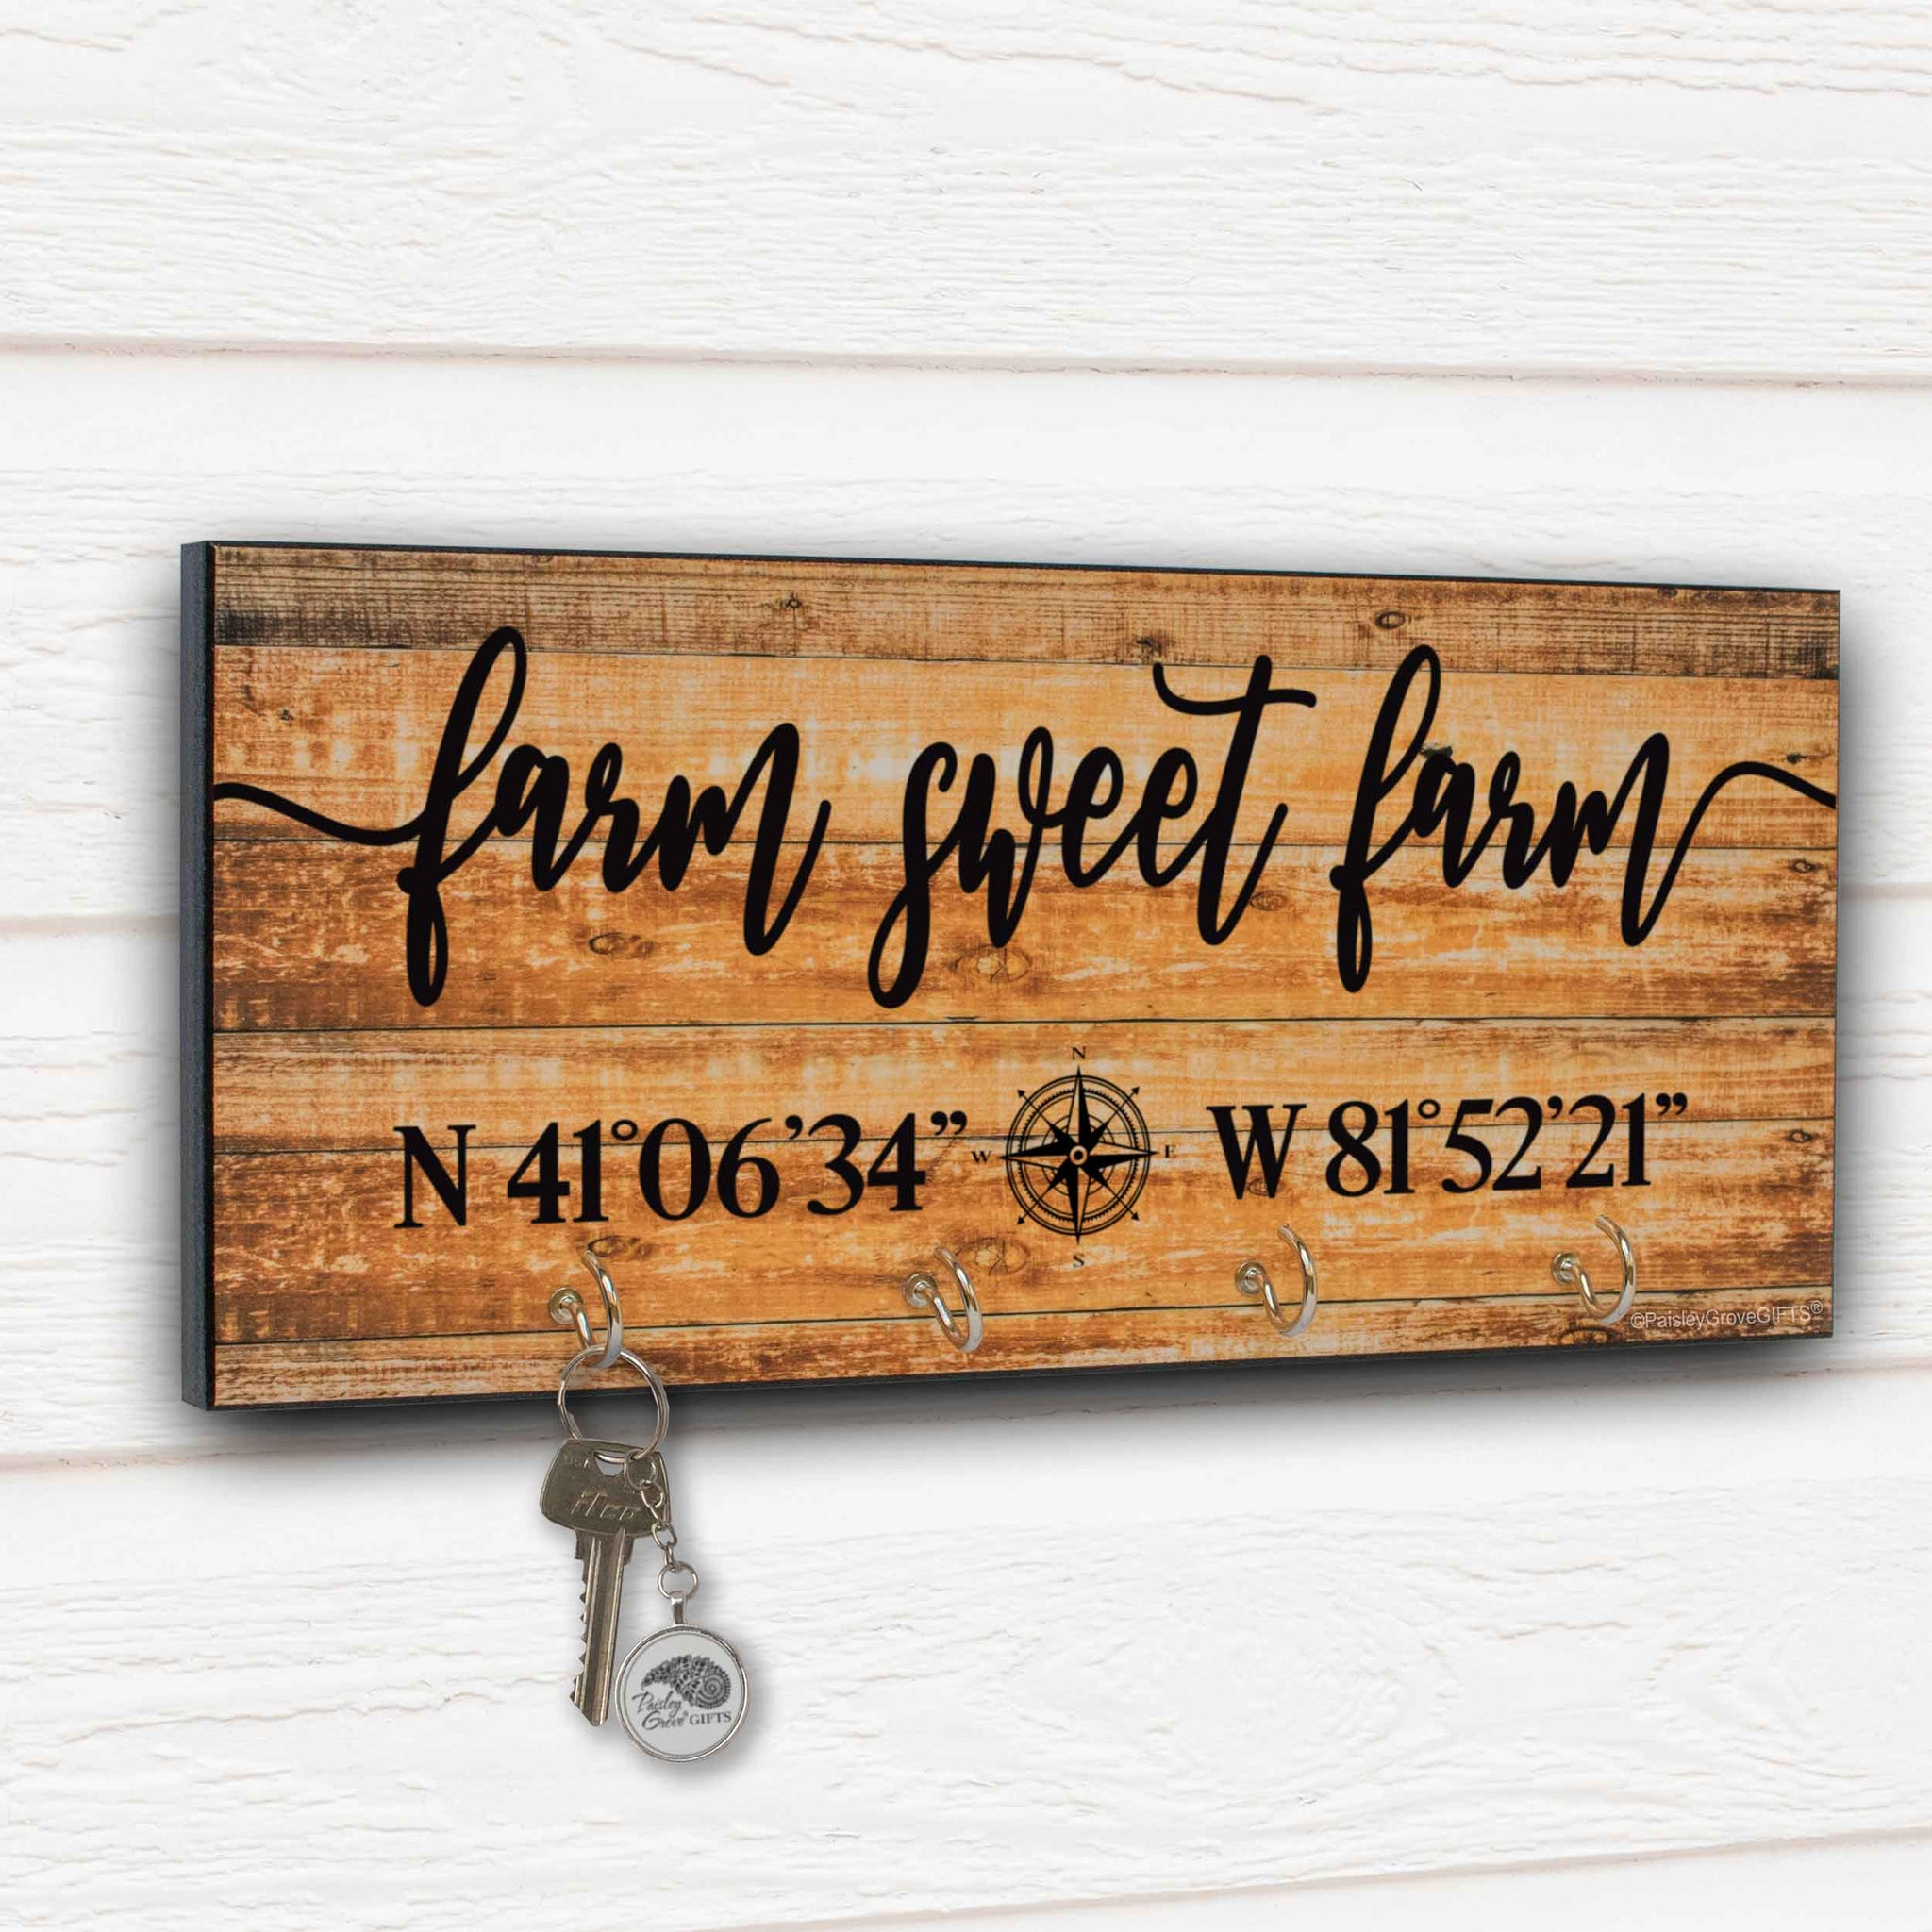 Farm Sweet Farm Key Holder for Wall with Coordinates Sign - S303b